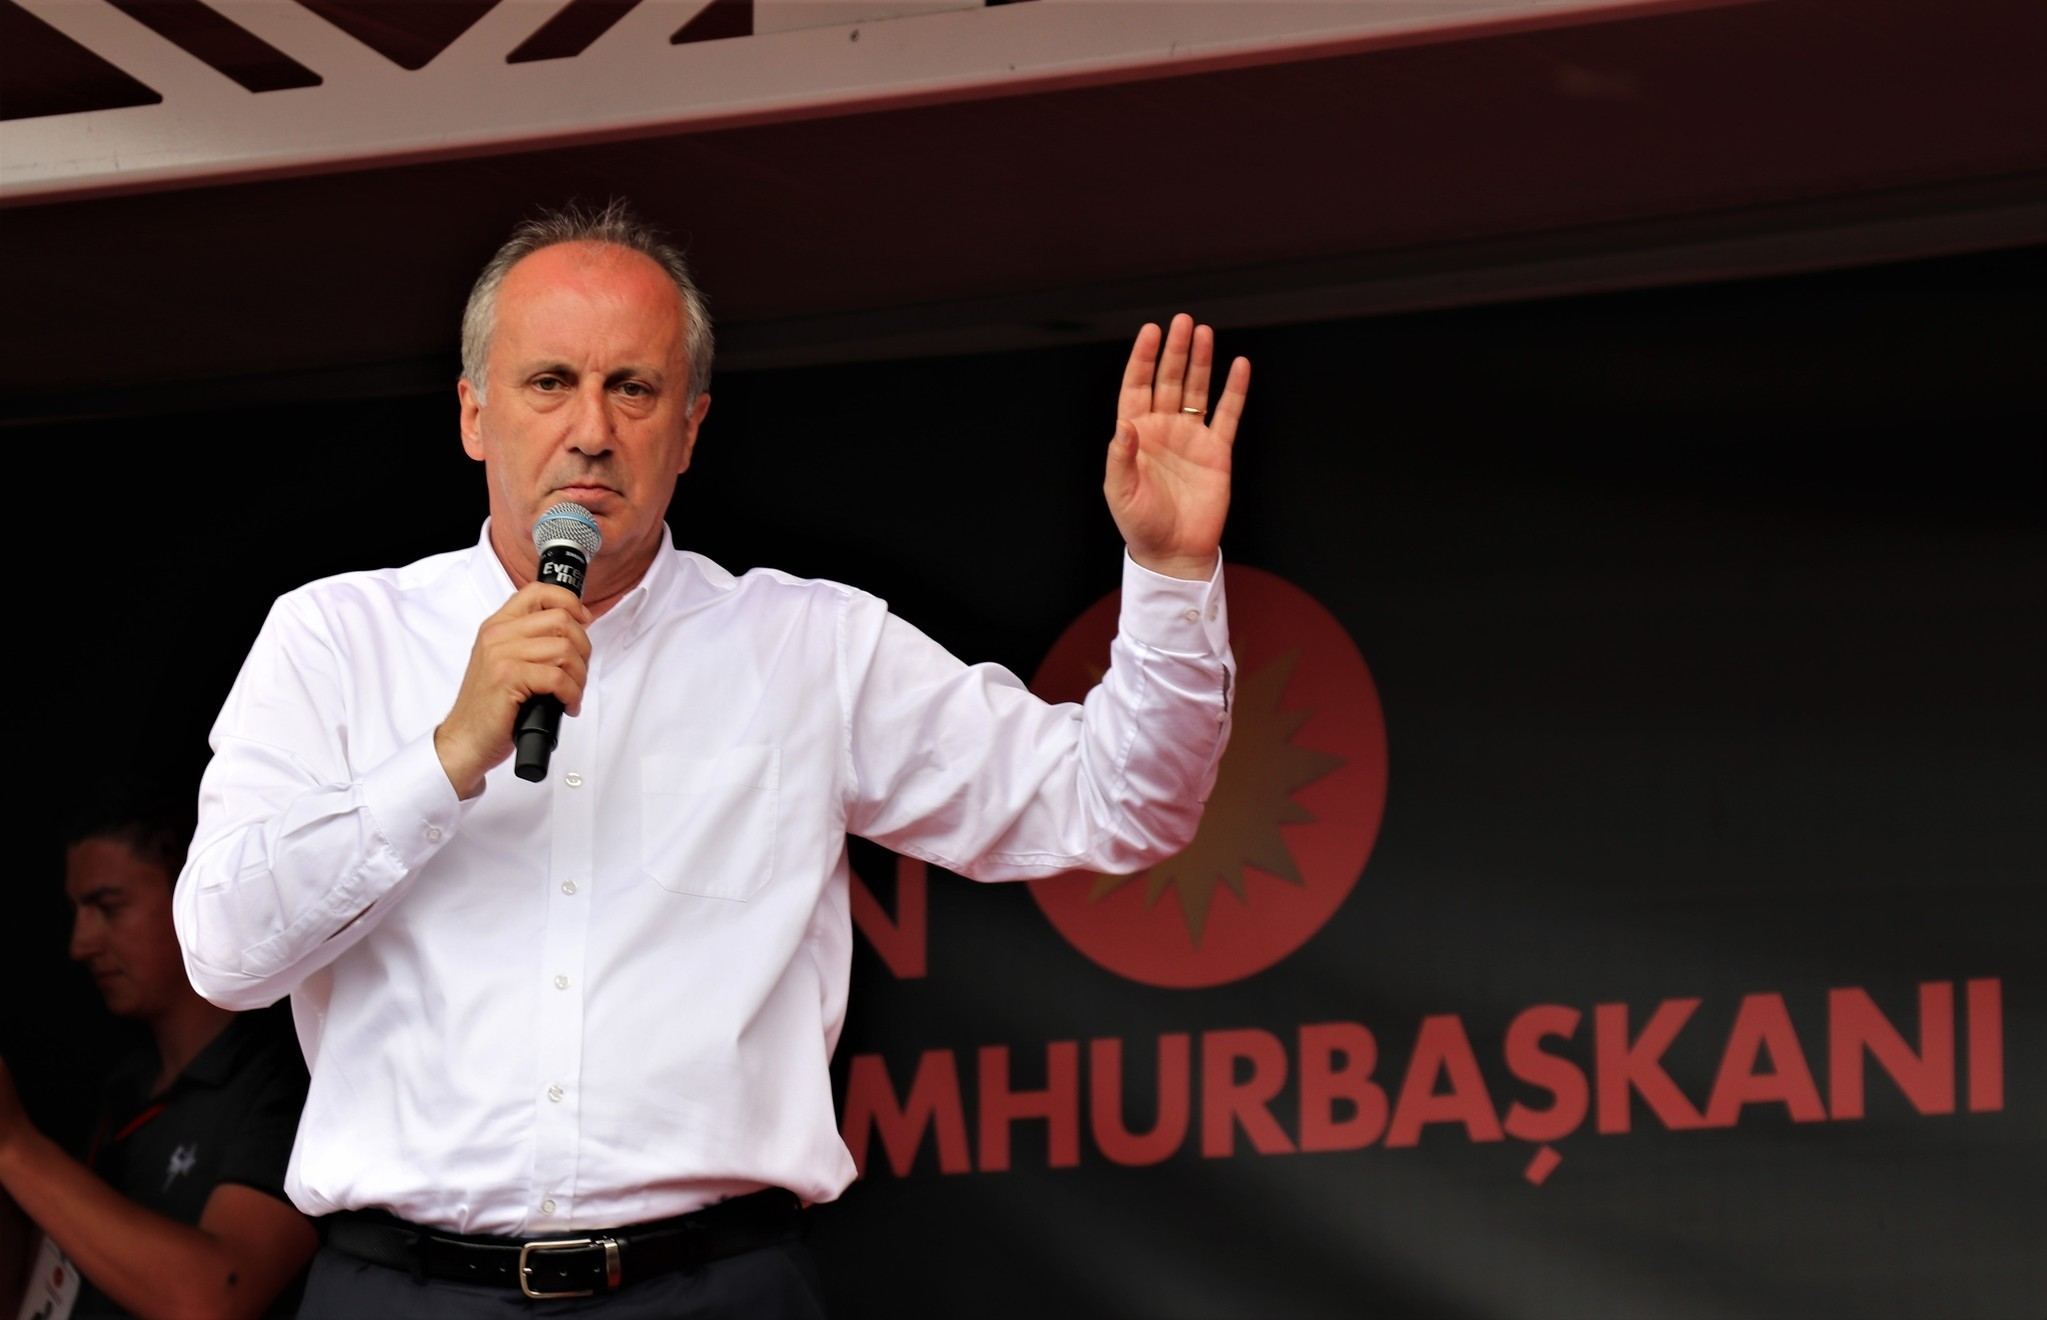 Recently, Muharrem u0130nce drew criticism after he vowed to u201cremove the epauletsu201d of Second Army Cmdr. u0130smail Metin Temel, referring to his military shoulder marks during his rallies in Istanbul.